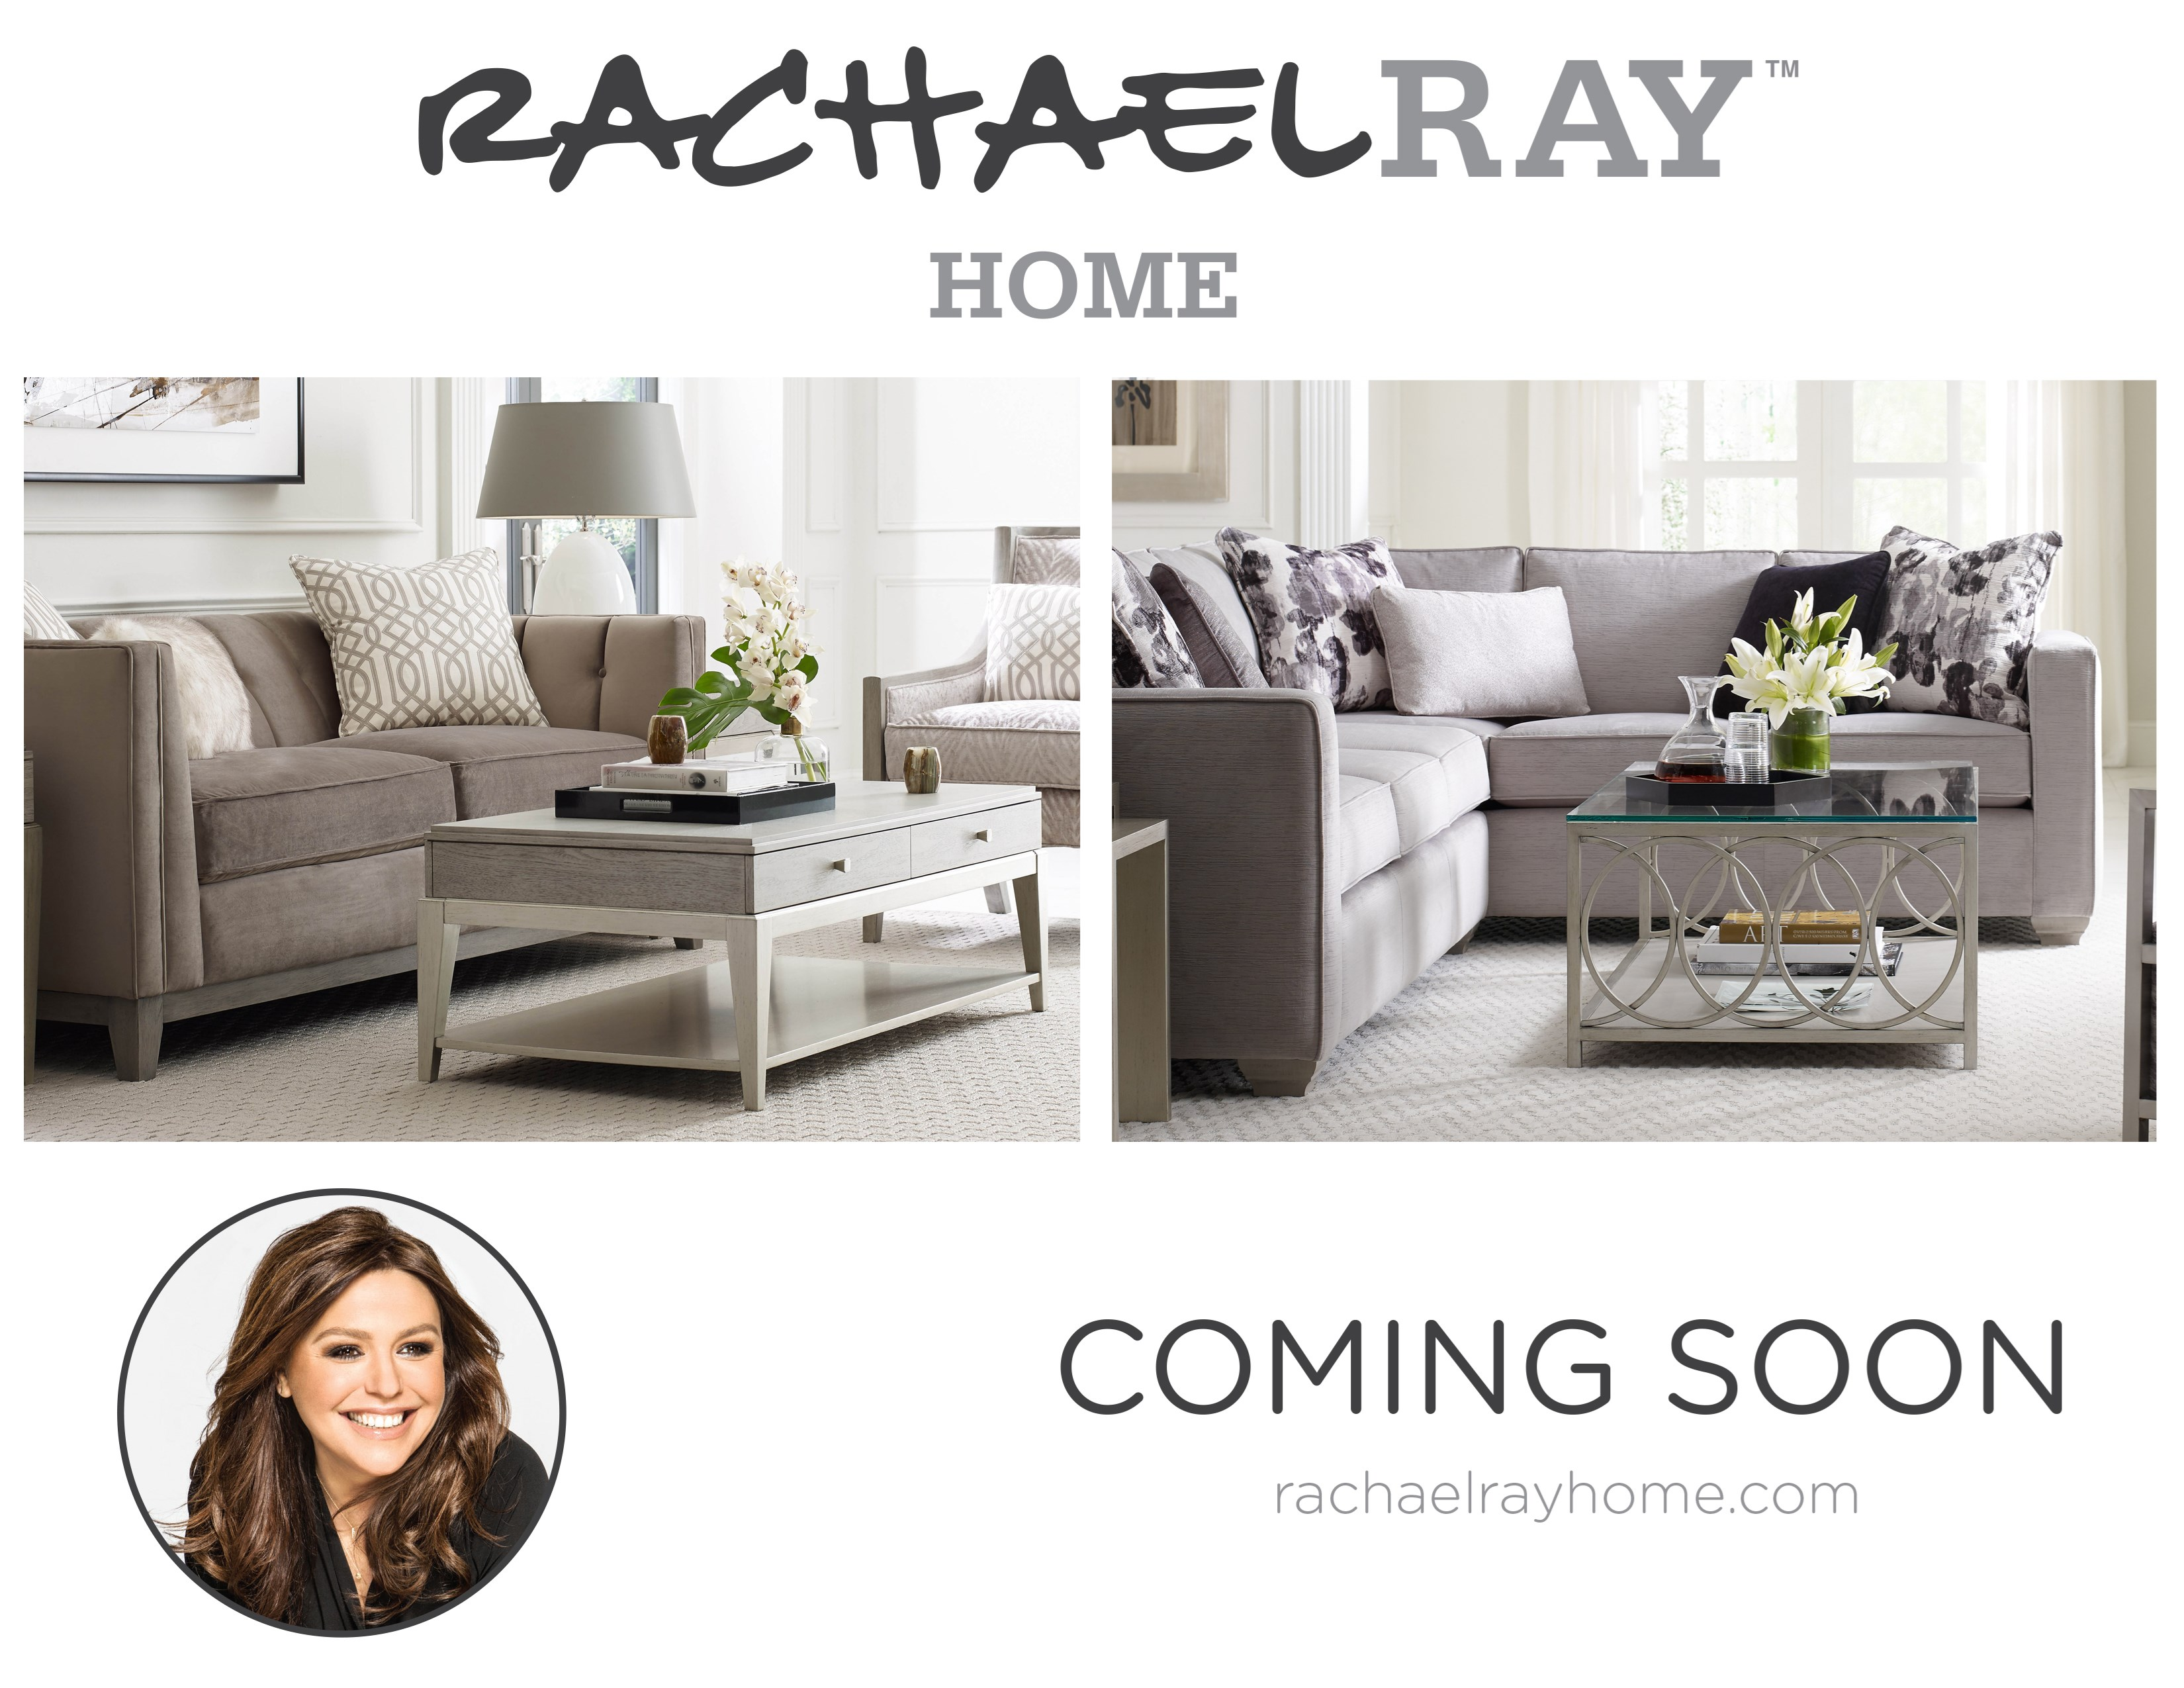 Rachael Ray Home by Craftmaster